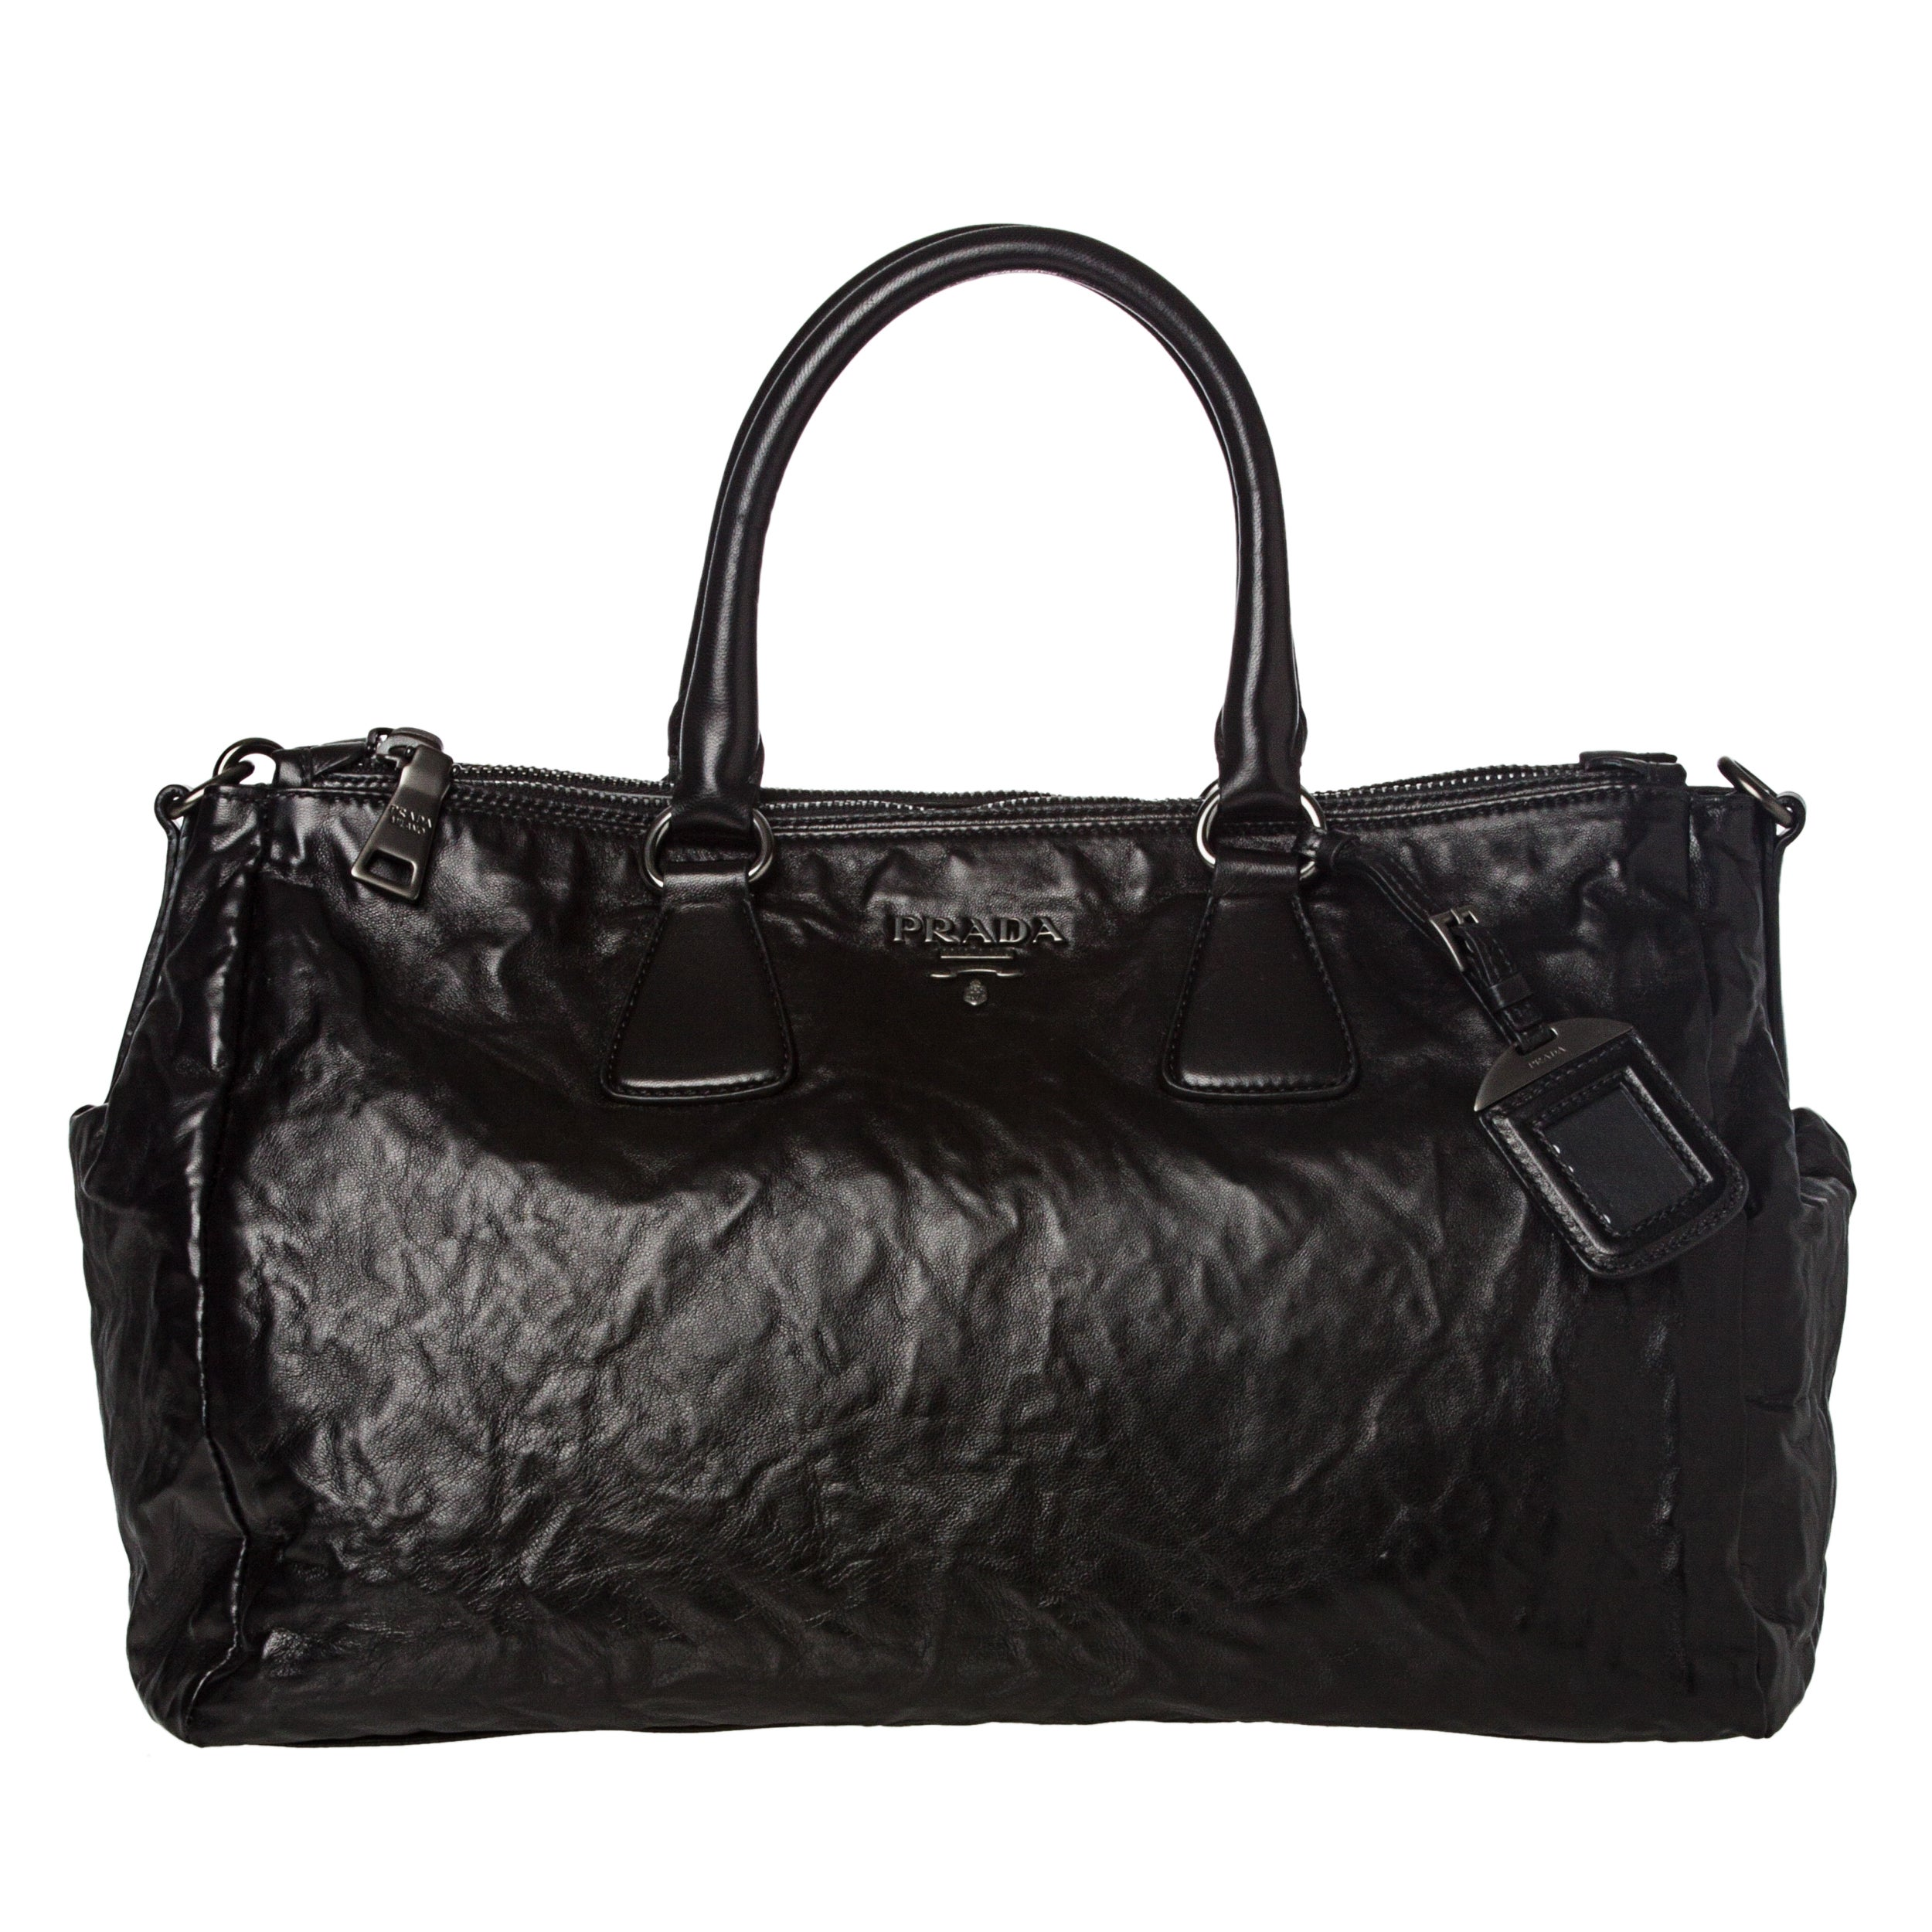 Prada Black Crinkled Leather Satchel